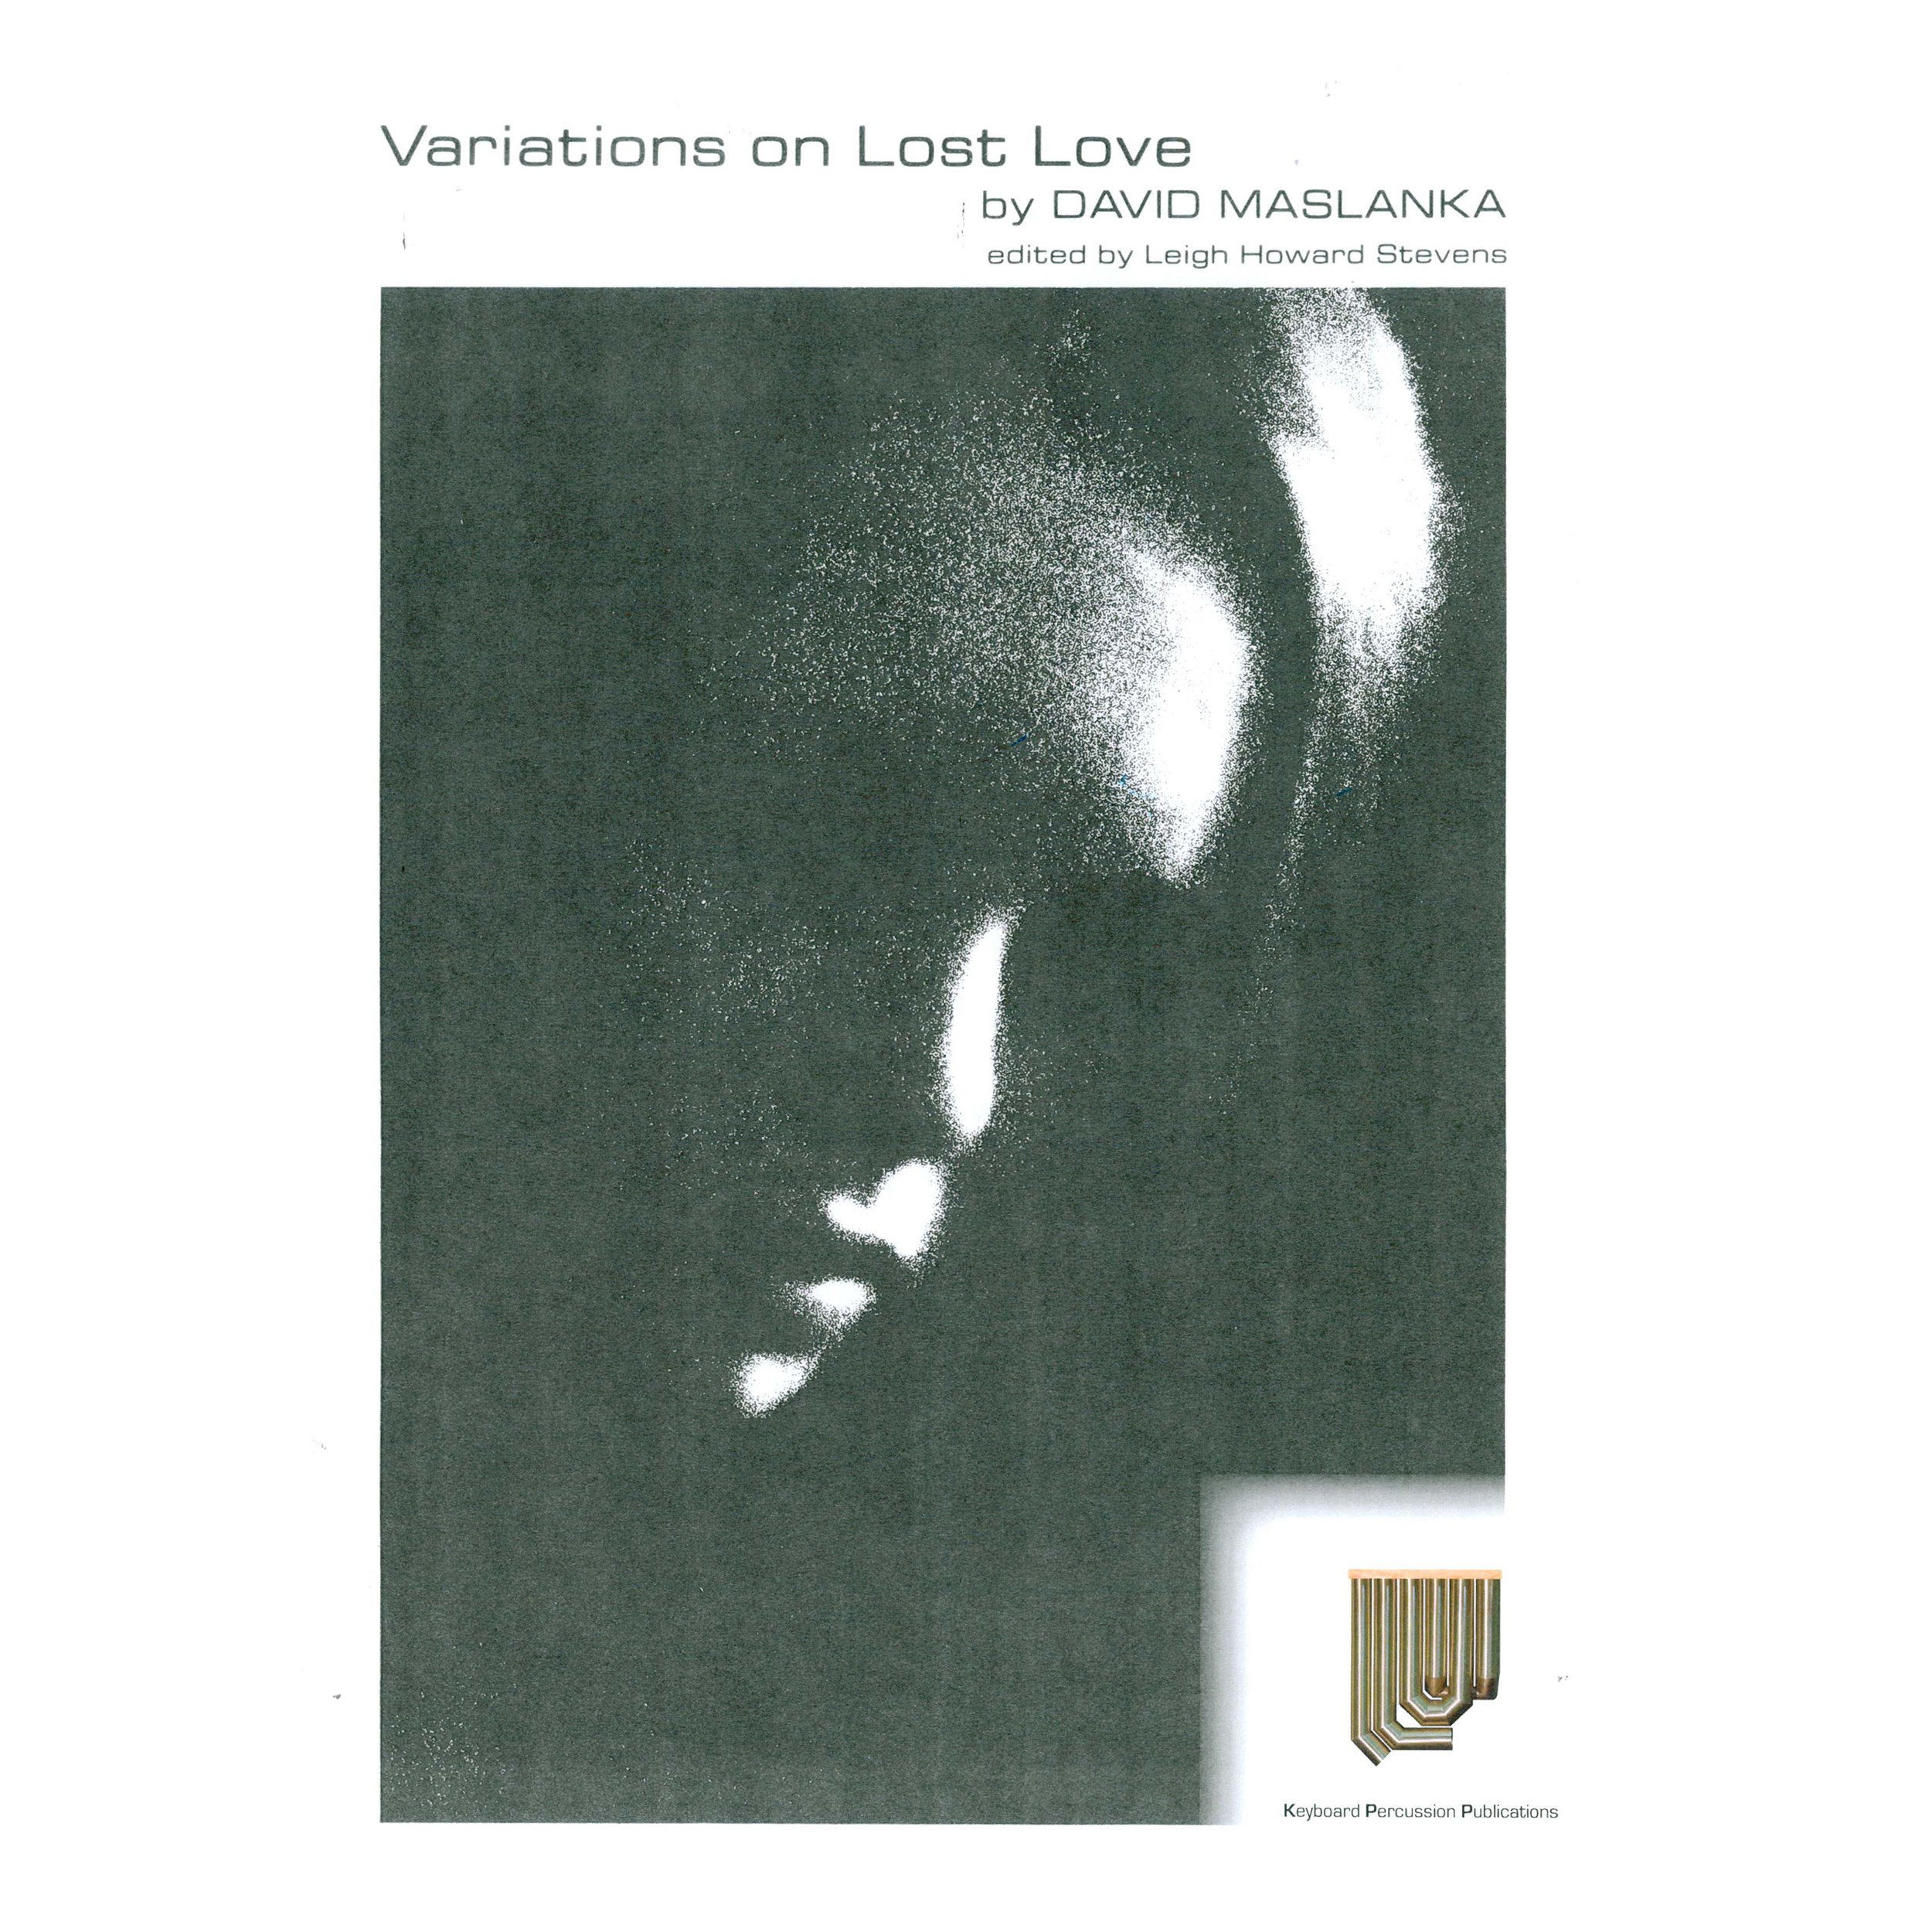 Variations on Lost Love by David Maslanka